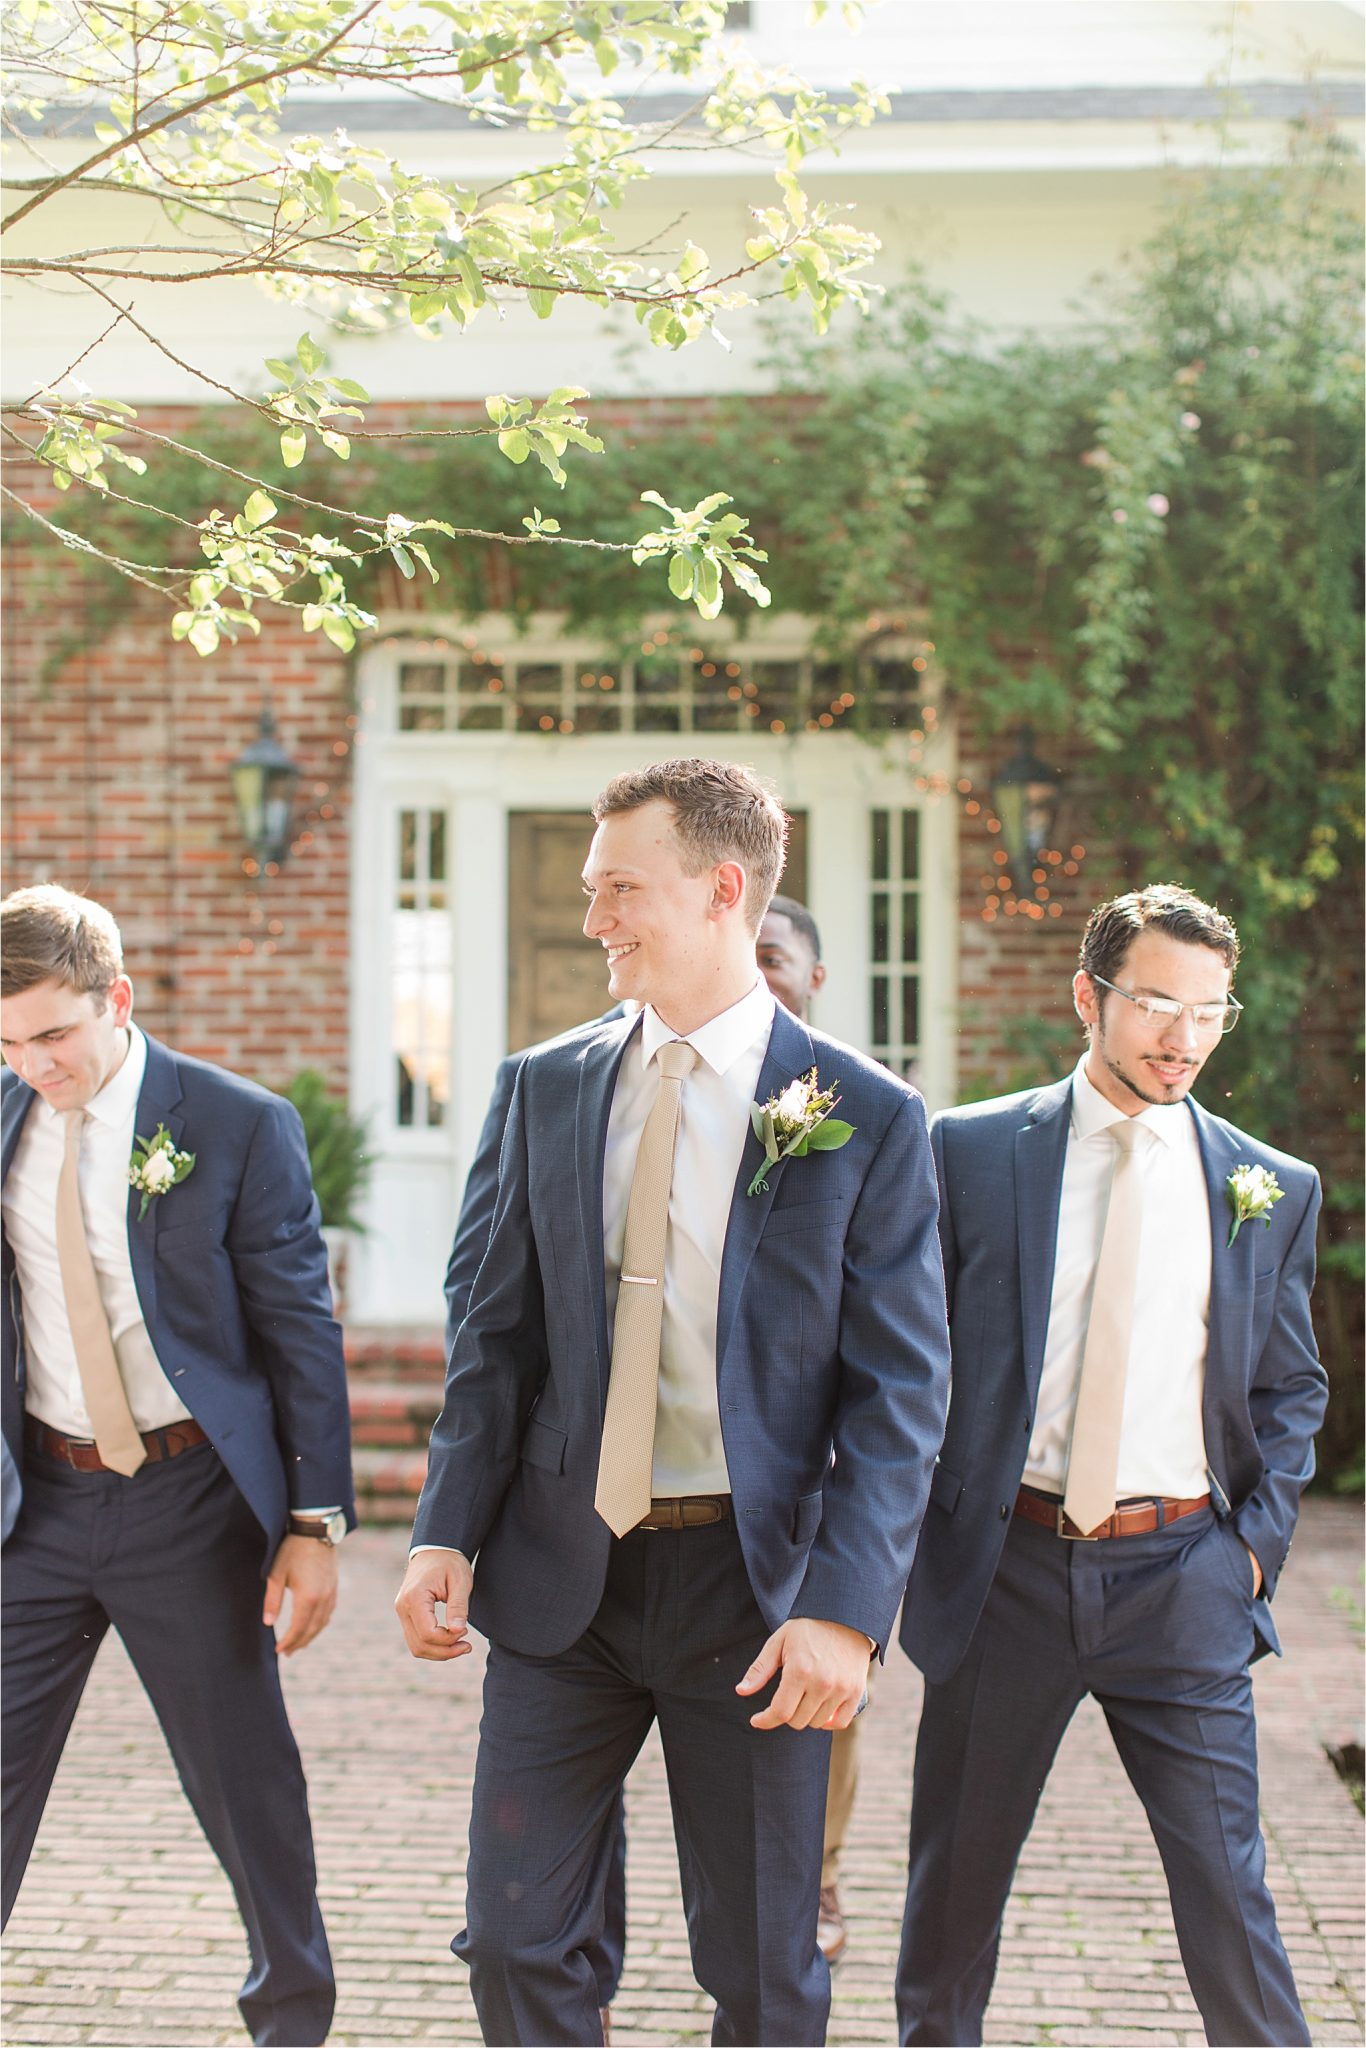 Hedge Farm Wedding, Alabama Wedding Photographer, Barn Wedding, Grooms and groomsmen, navy